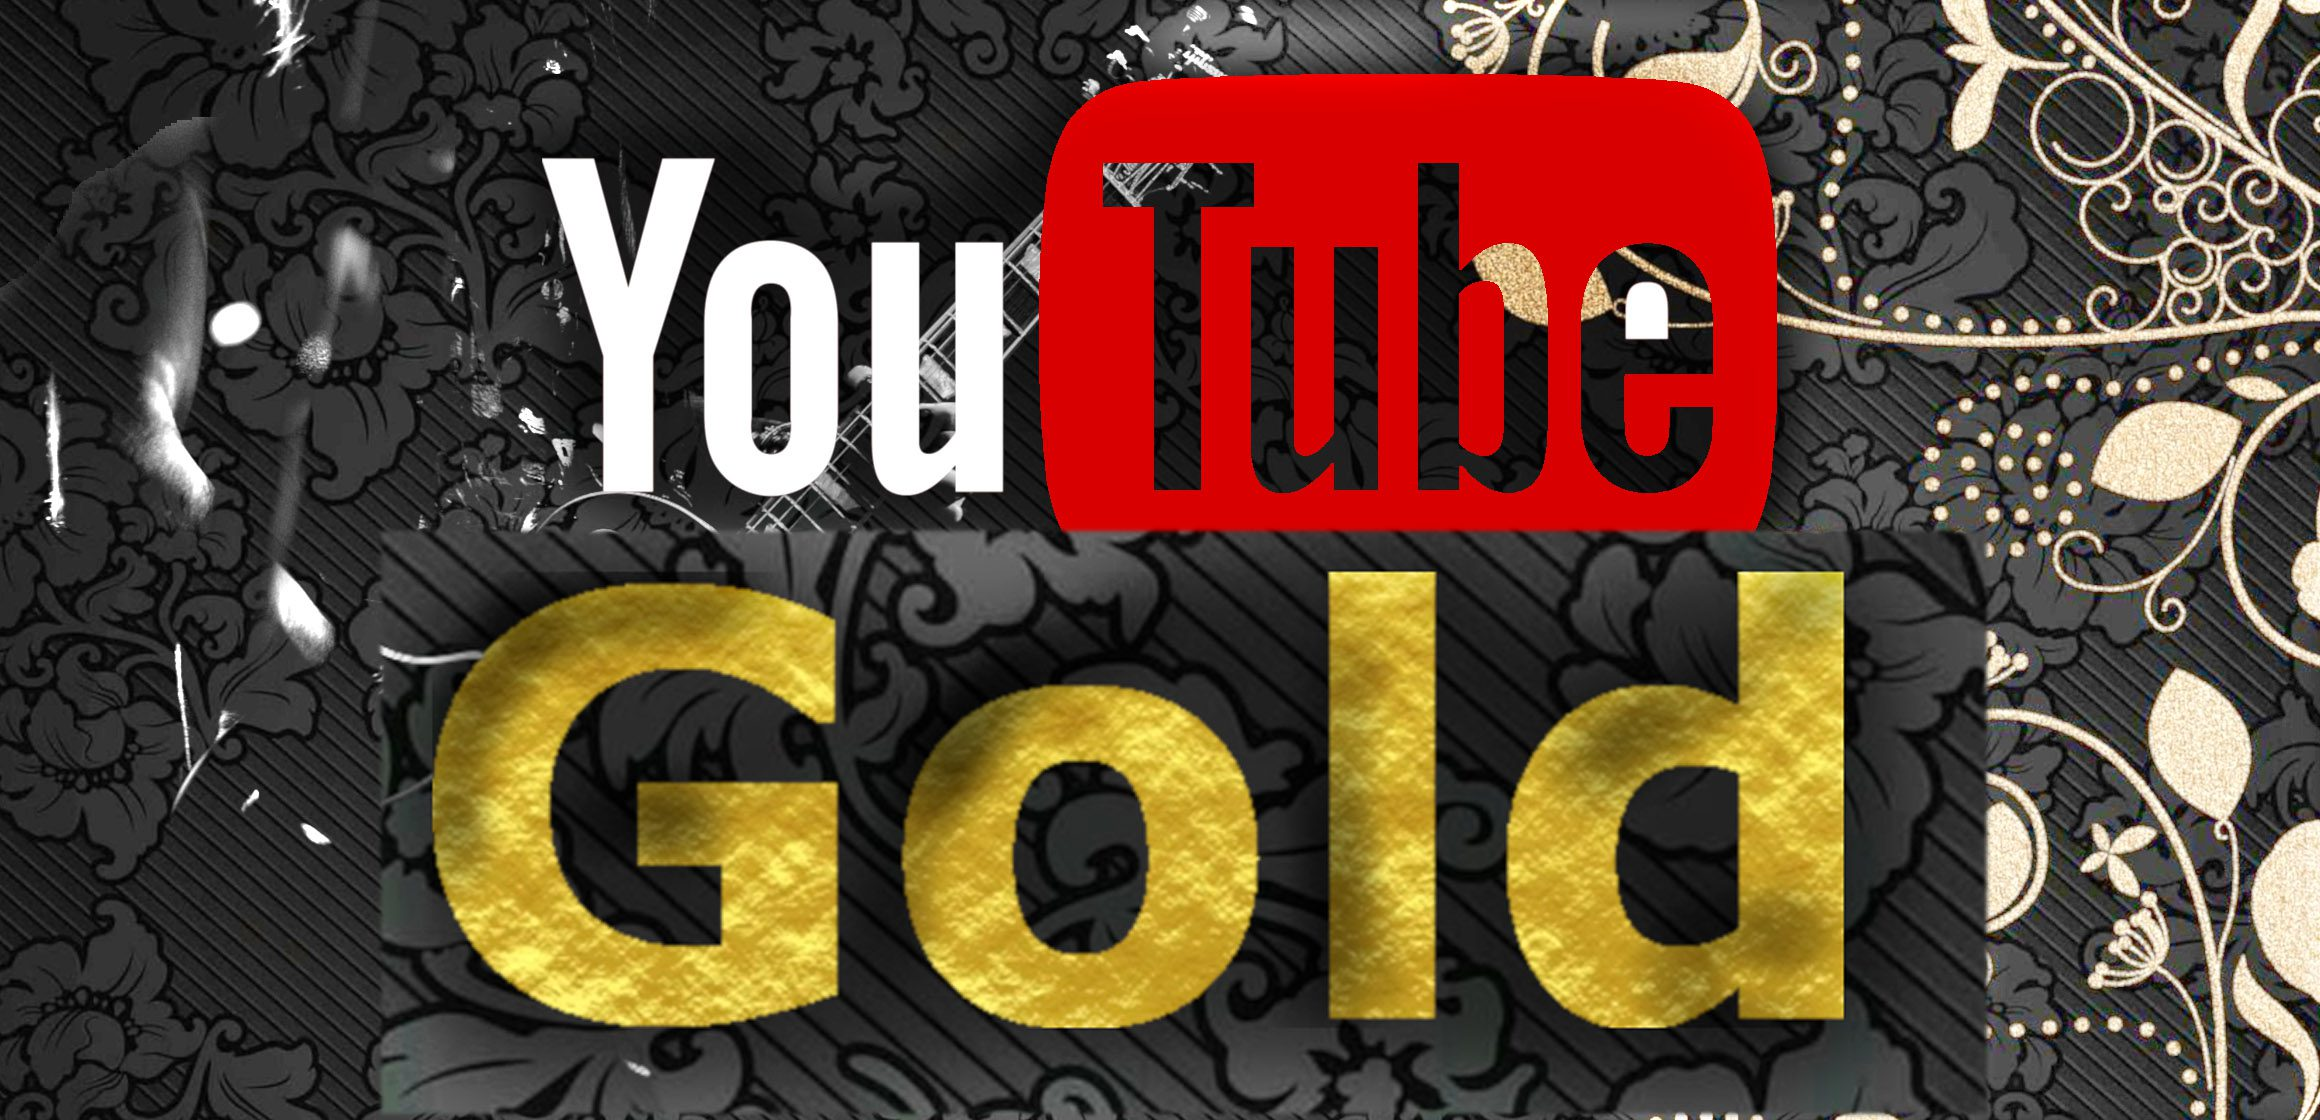 Gute vibes tube suche videos